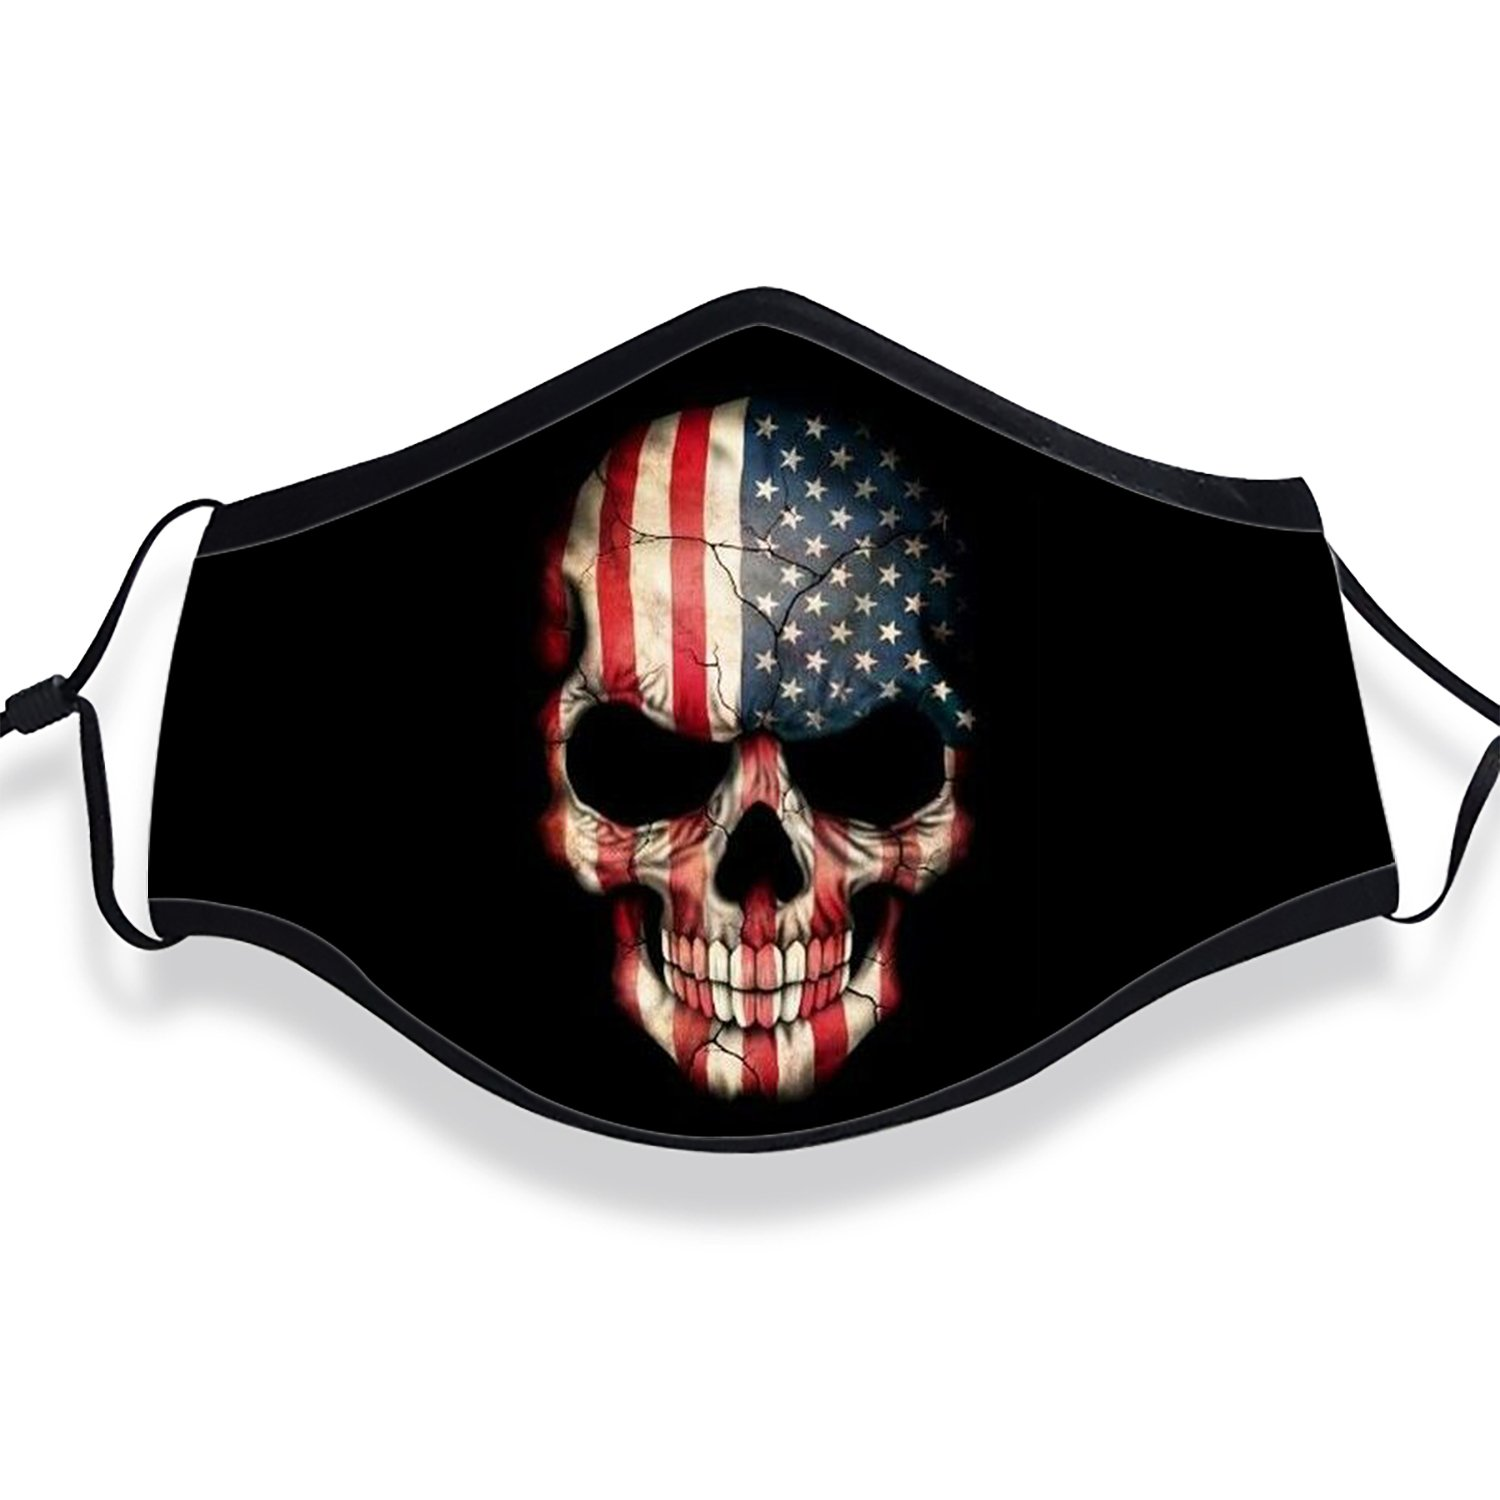 XREE USA Flag Skull Anti Dust Face Mouth Cover Mask Respirator Cotton Protective Breath Healthy Safety Warm Windproof Mask (Mask + Filters)